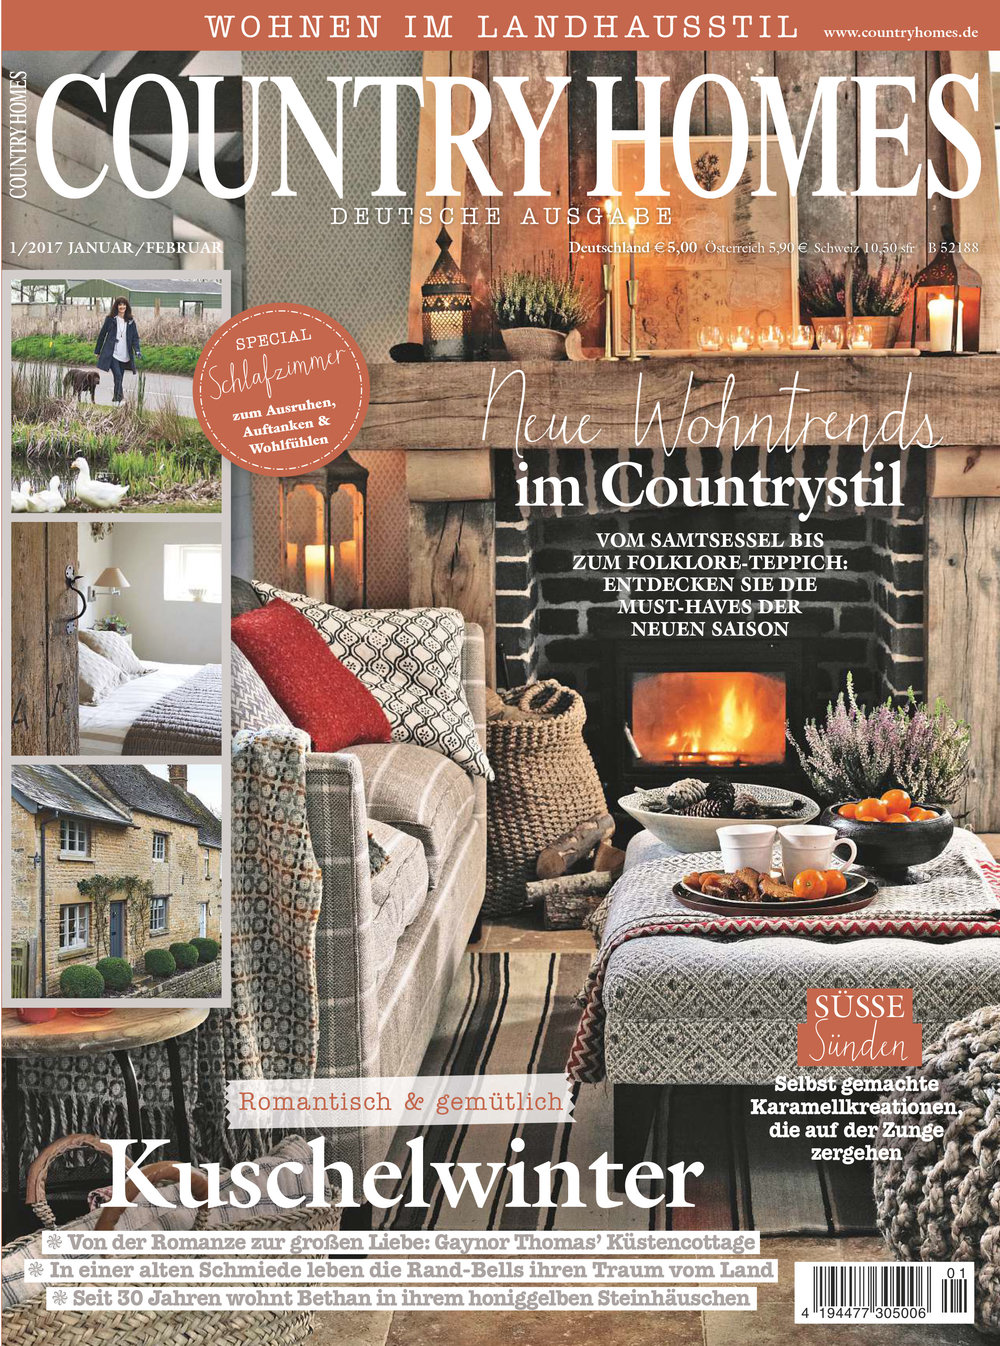 German Country Homes jan.feb 17 cover jpg.jpg